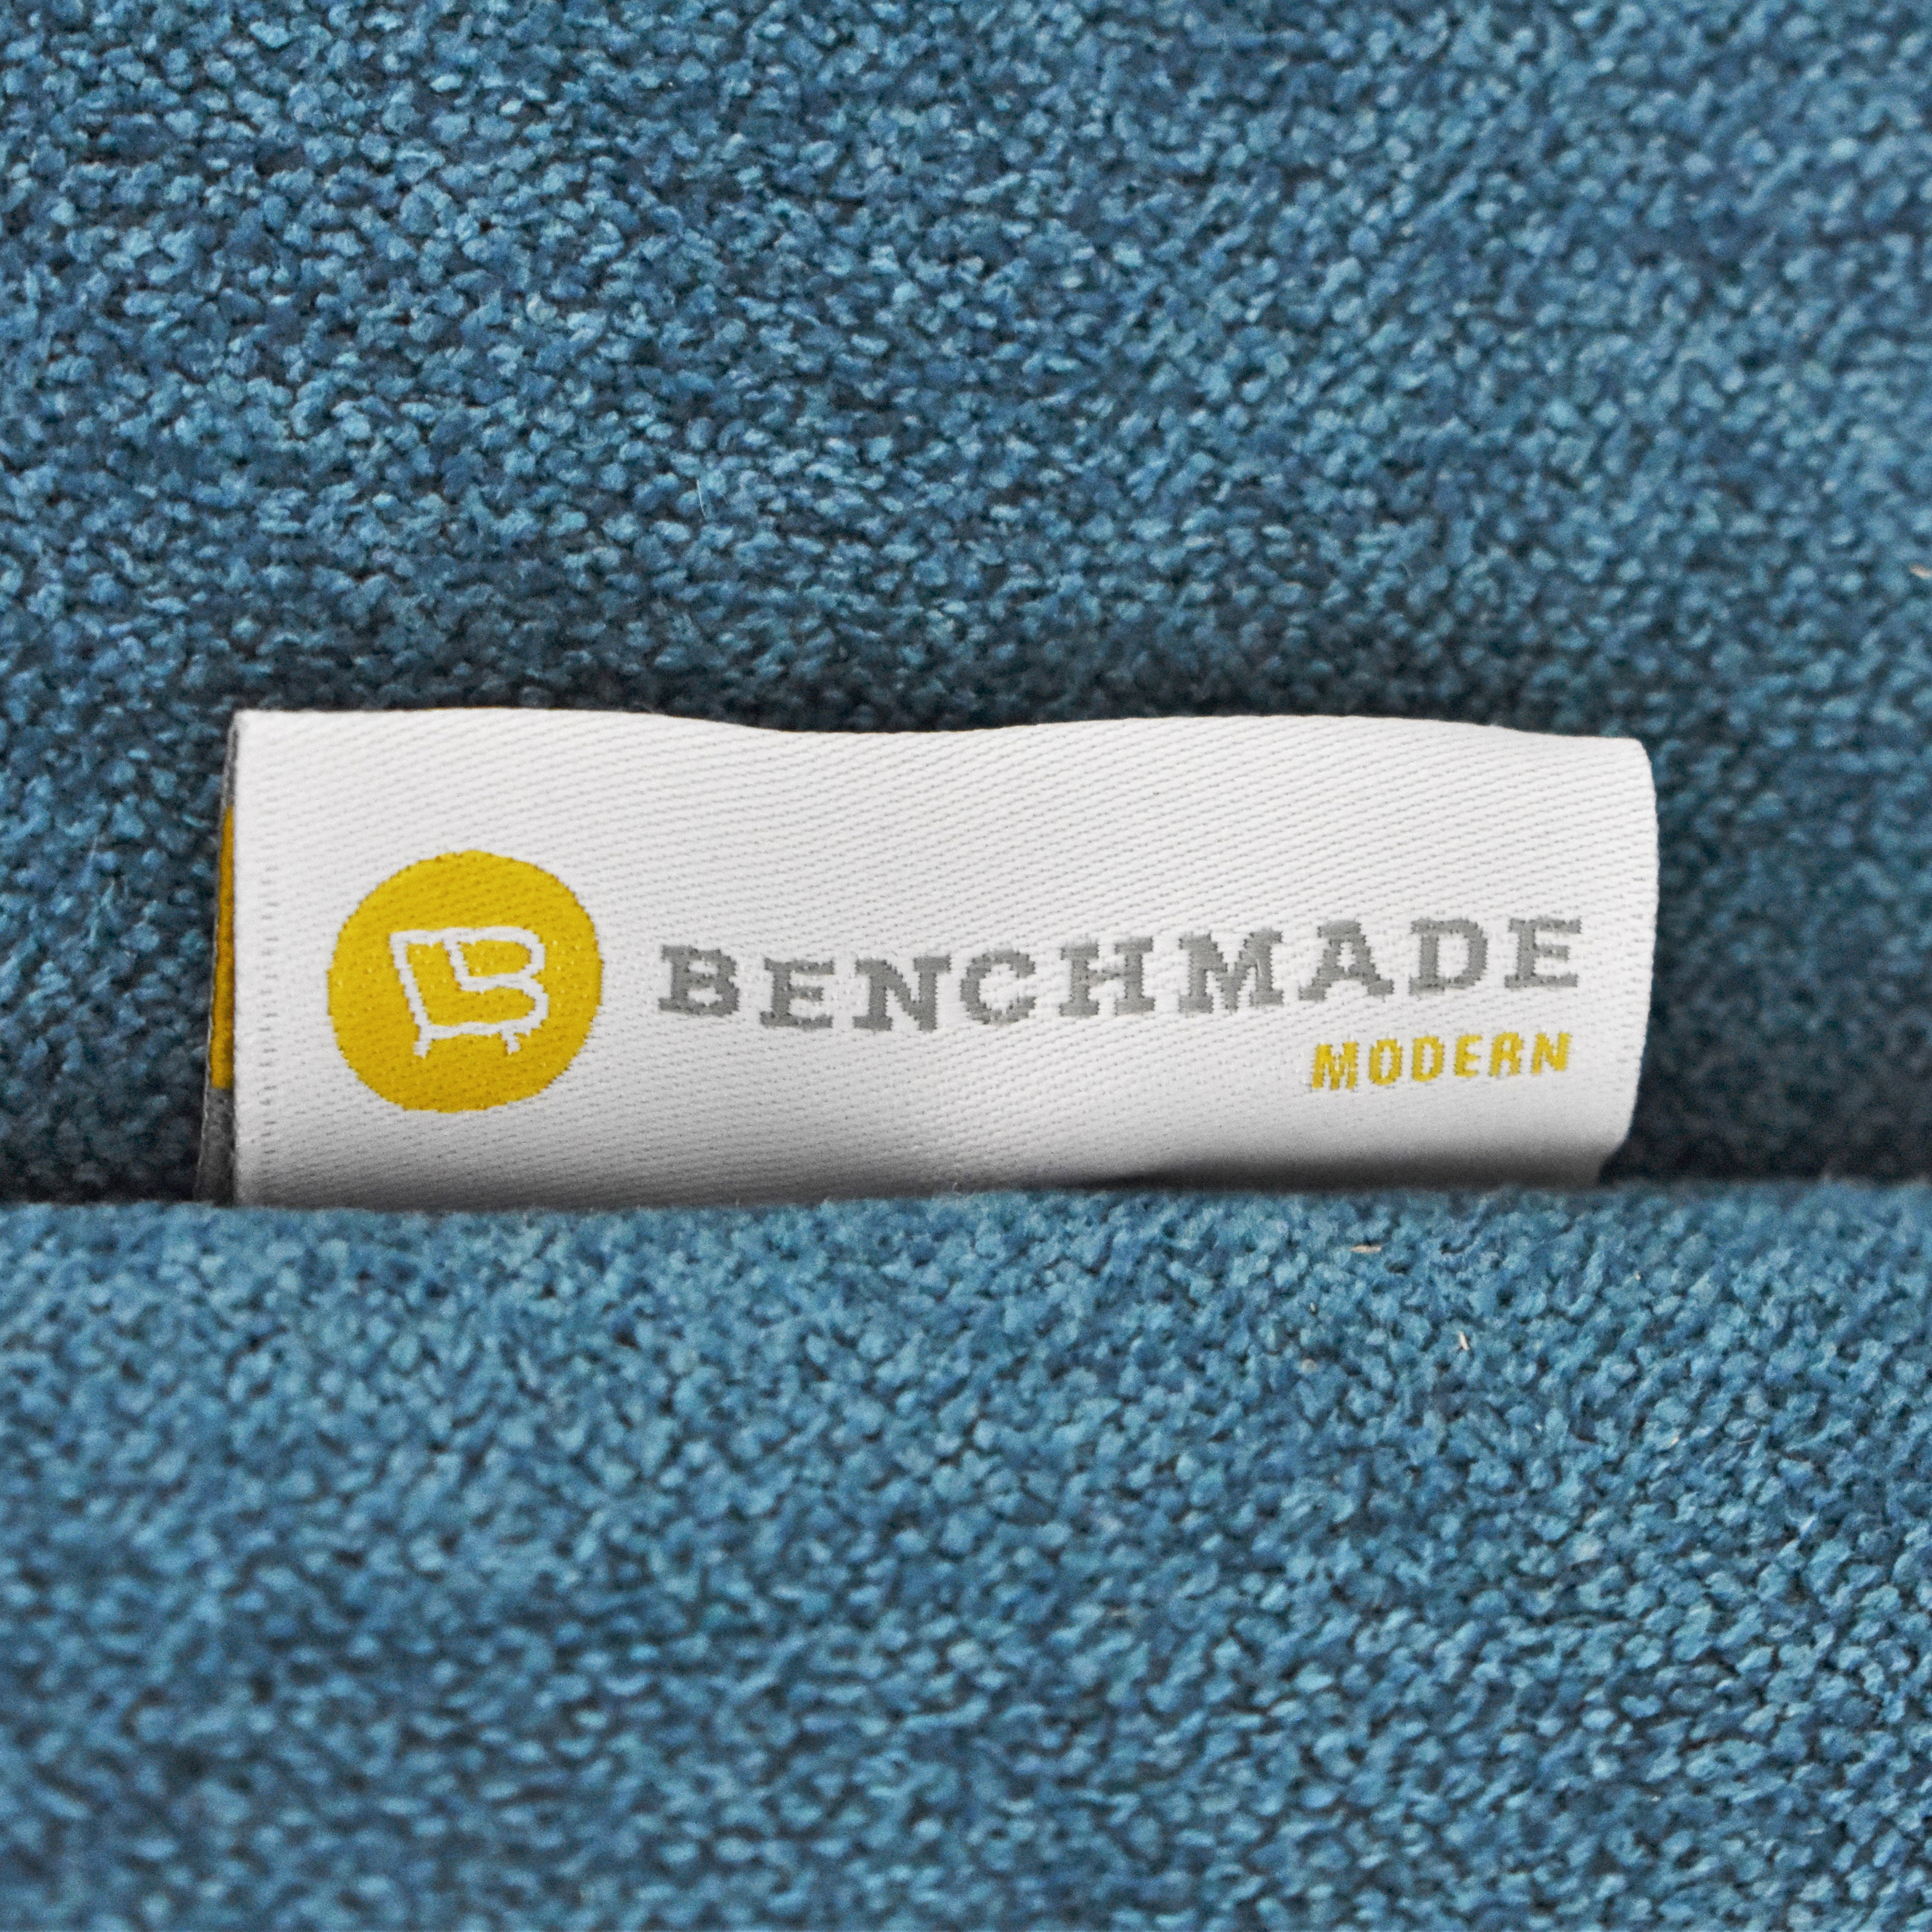 BenchMade Modern BenchMade Modern Johnny Homemaker Sectional Sofa with Chaise coupon